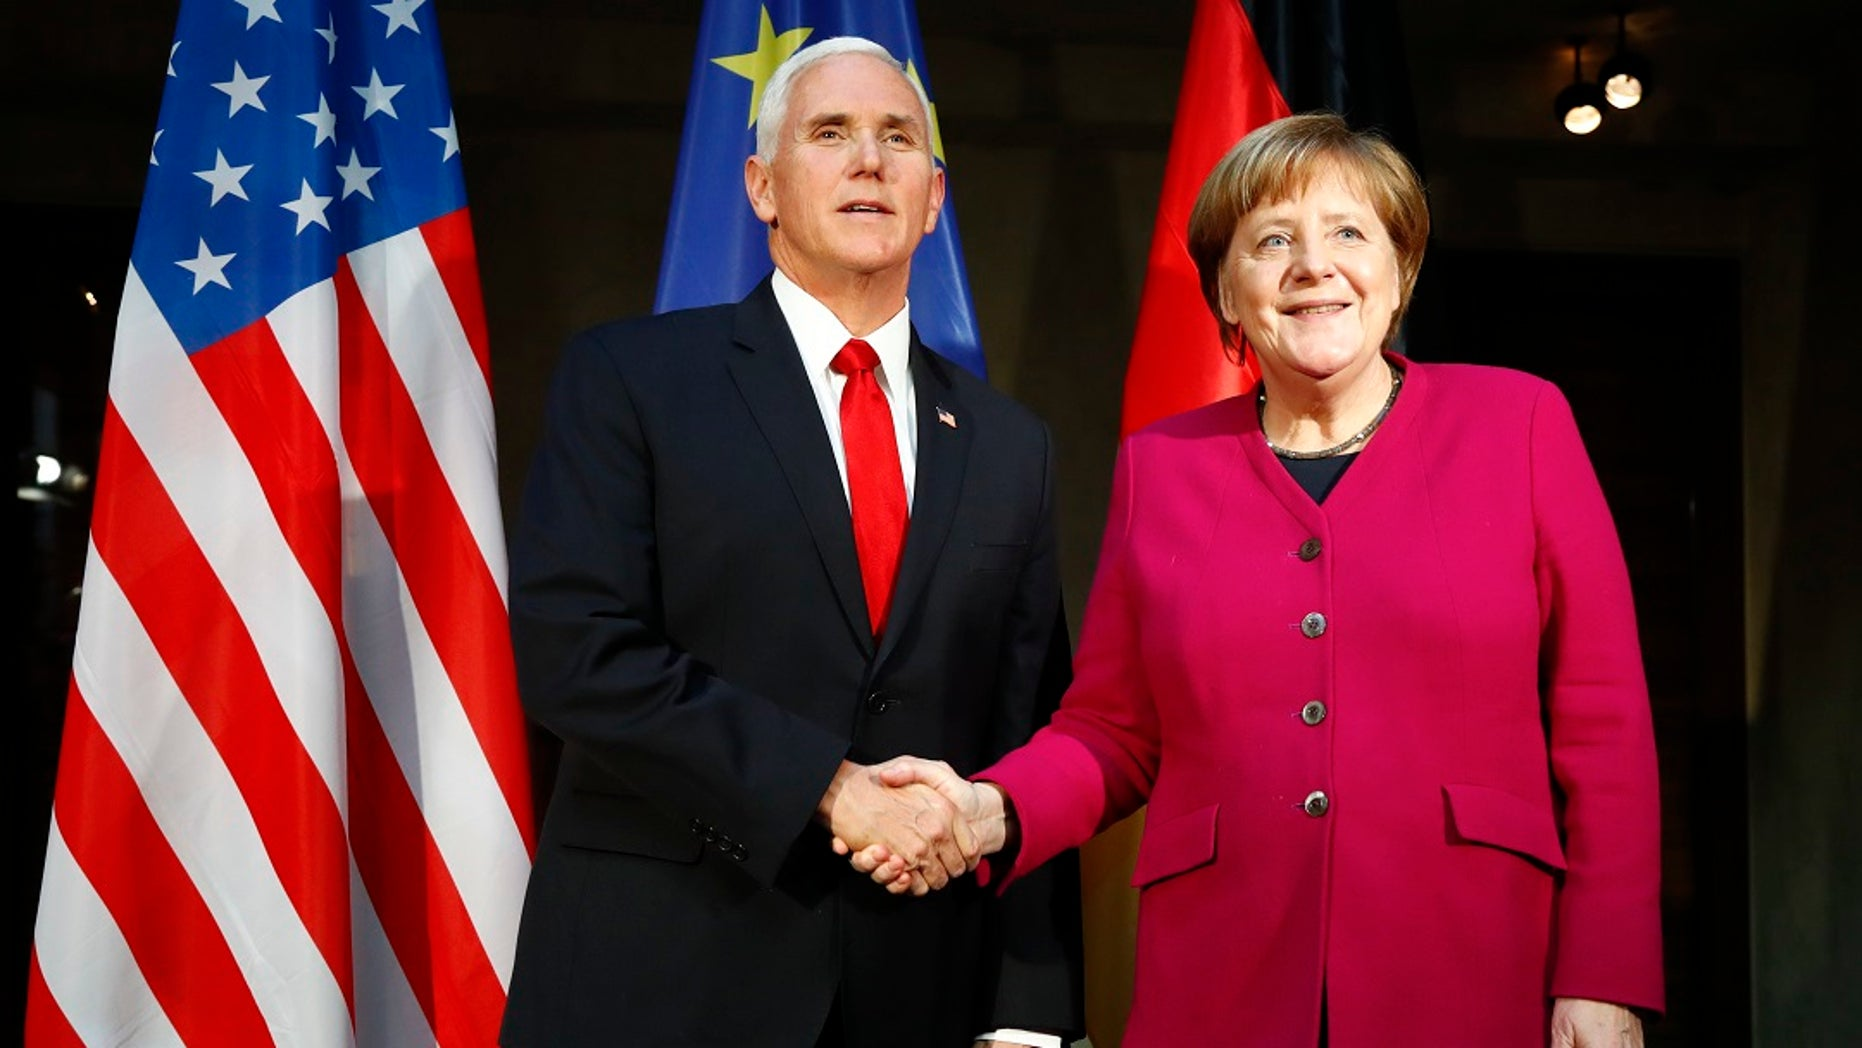 """Vice President Mike Pence and German Chancellor Angela Merkel meet at the Munich Security Conference in Munich, Germany, February 1<div class=""""e3lan e3lan-in-post1""""><script async src=""""//pagead2.googlesyndication.com/pagead/js/adsbygoogle.js""""></script> <!-- Text_Image --> <ins class=""""adsbygoogle""""      style=""""display:block""""      data-ad-client=""""ca-pub-7122614041285563""""      data-ad-slot=""""2268374881""""      data-ad-format=""""auto""""      data-full-width-responsive=""""true""""></ins> <script> (adsbygoogle = window.adsbygoogle 